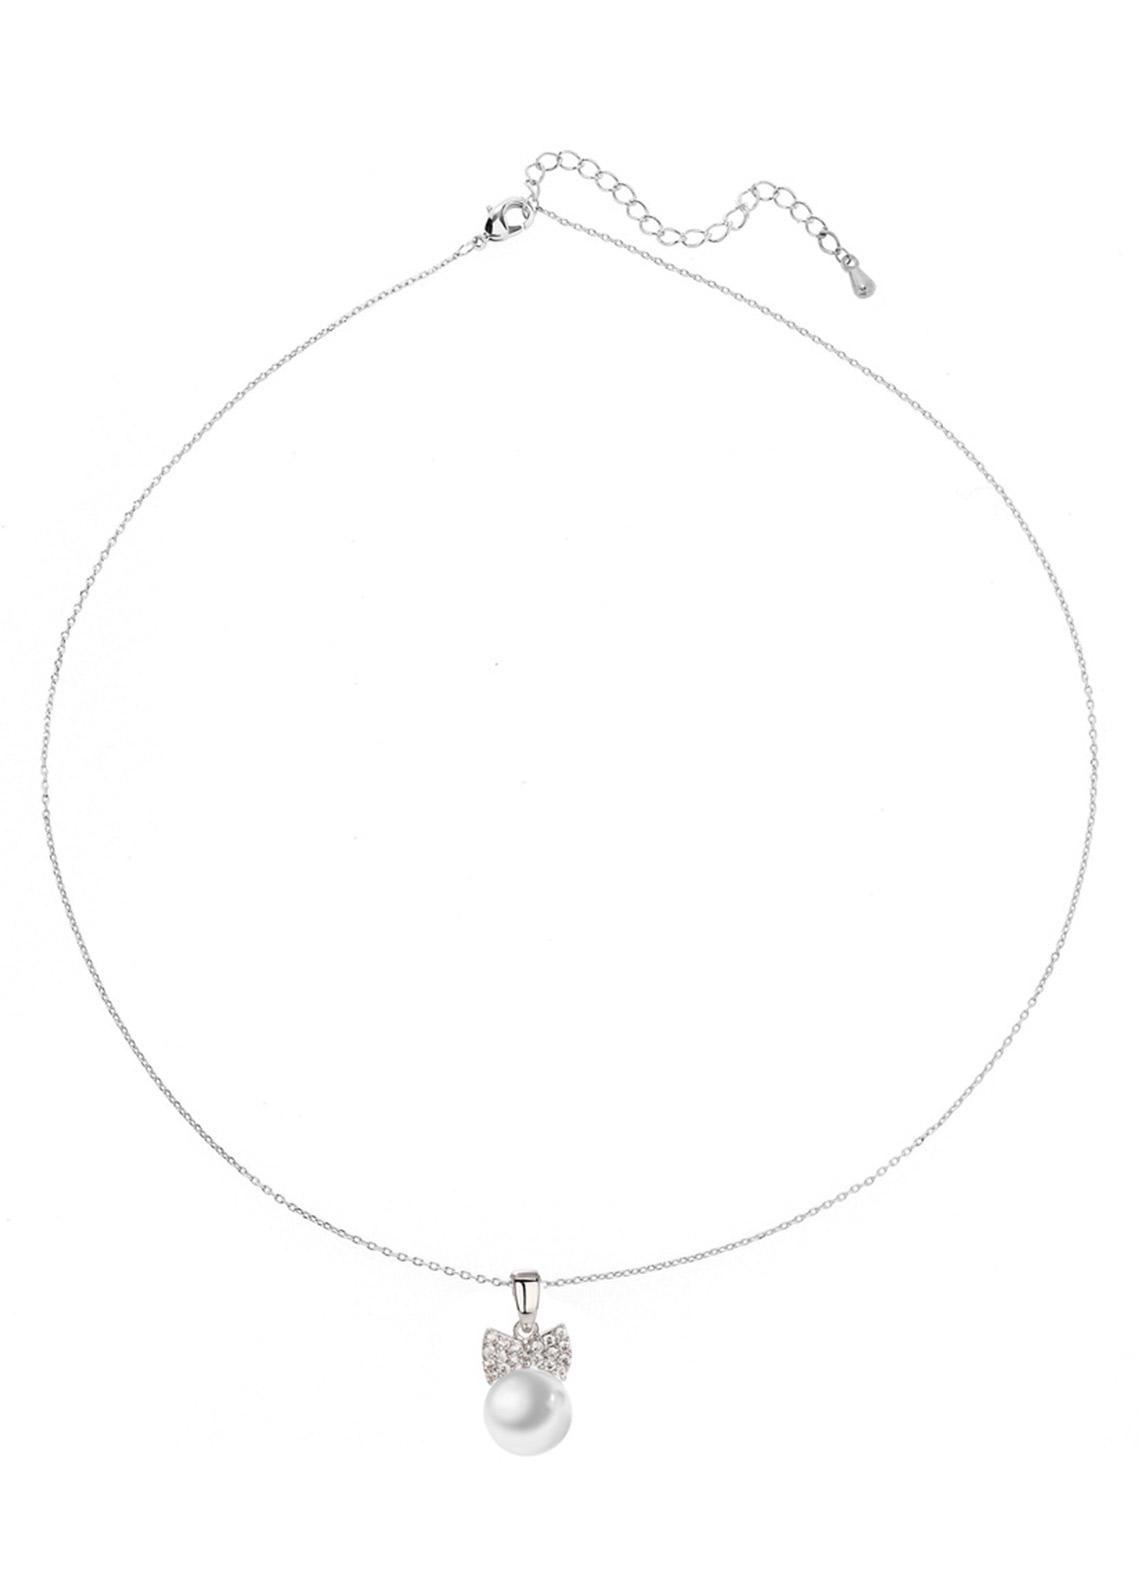 Anna Grace London by Silk Avenue Silver Plated Crystal Bow Pearl Necklace AGN0038 - Ladies Jewellery